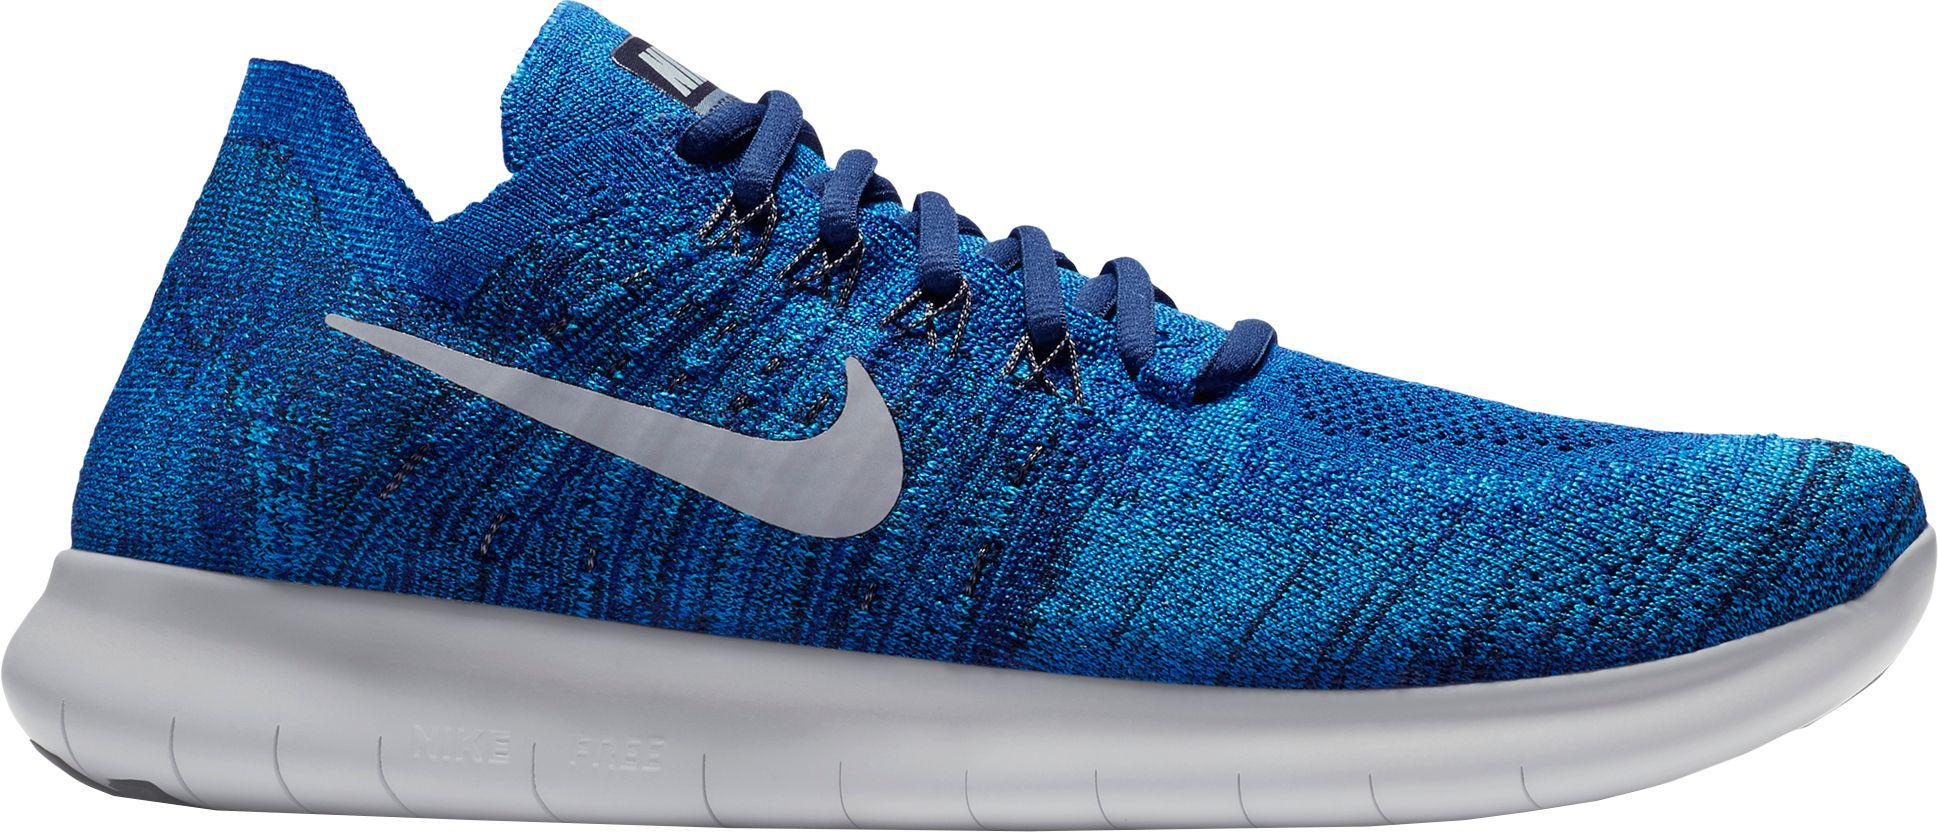 217d68d94717 Lyst - Nike Free Rn Flyknit 2017 Running Shoes in Blue for Men